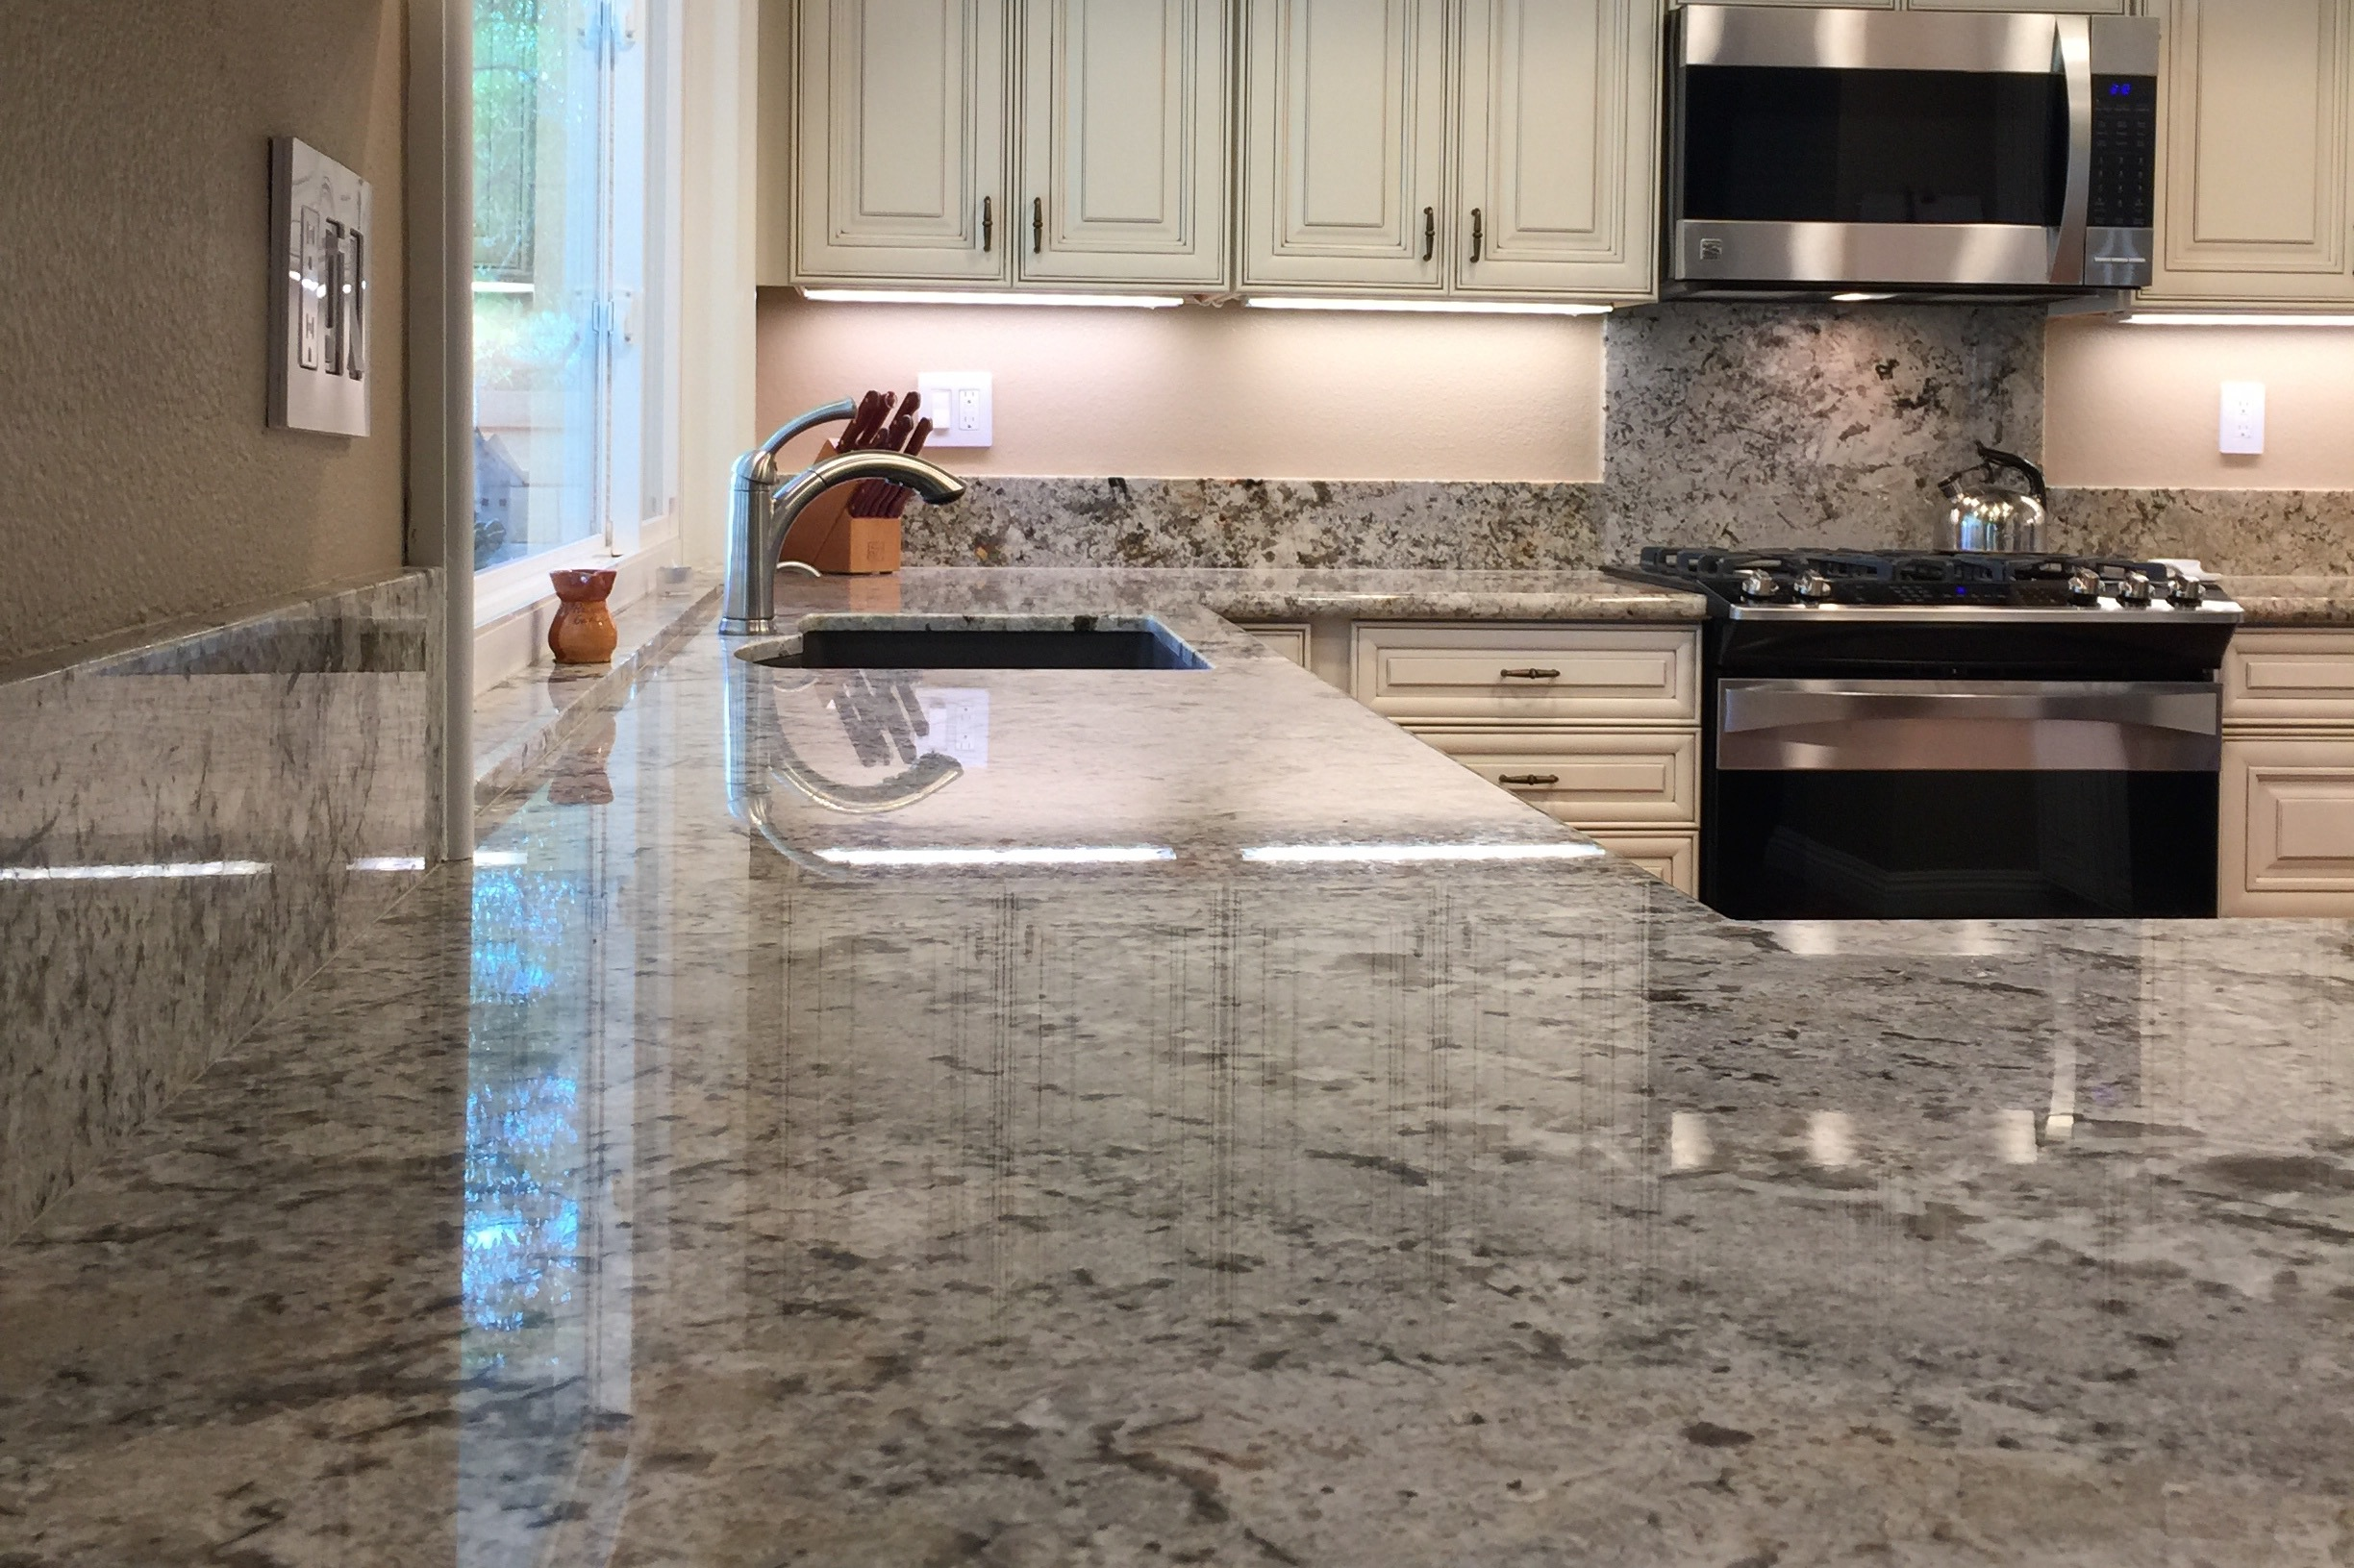 Kitchen and bath remodeling tips from inspired remodels for Bath remodel guide